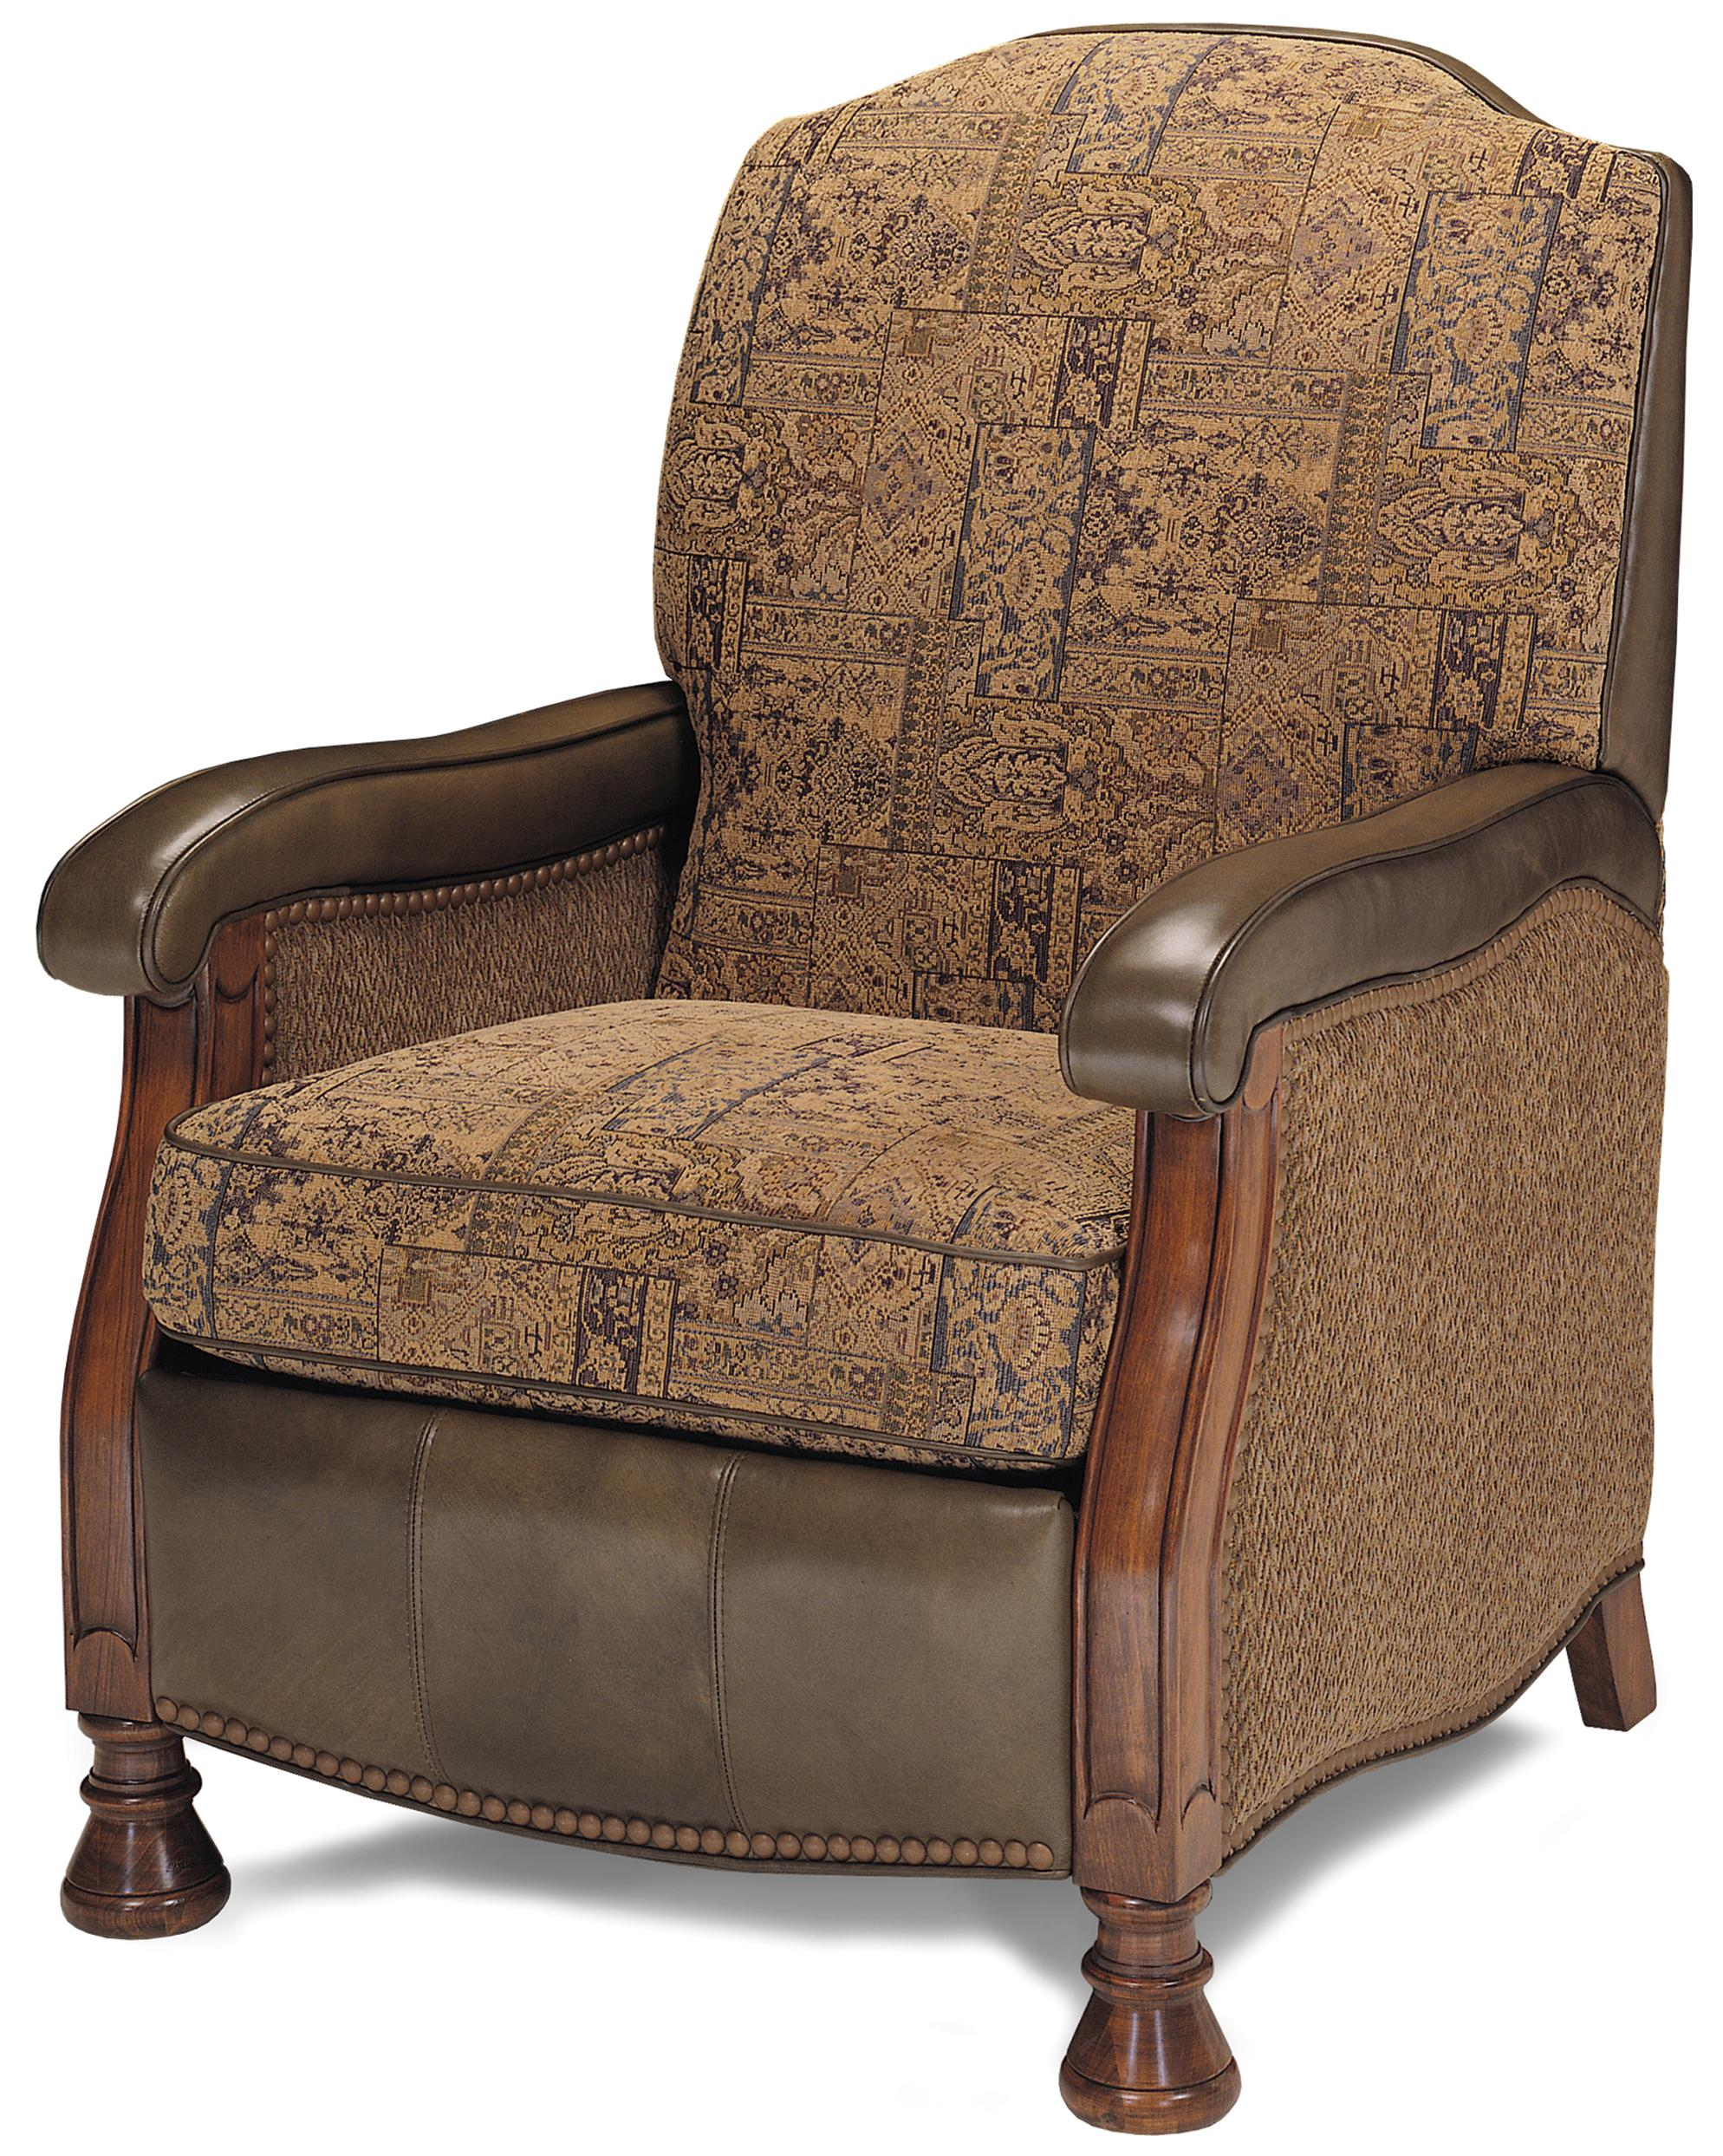 Recliners Recliner by MotionCraft by Sherrill at Alison Craig Home Furnishings